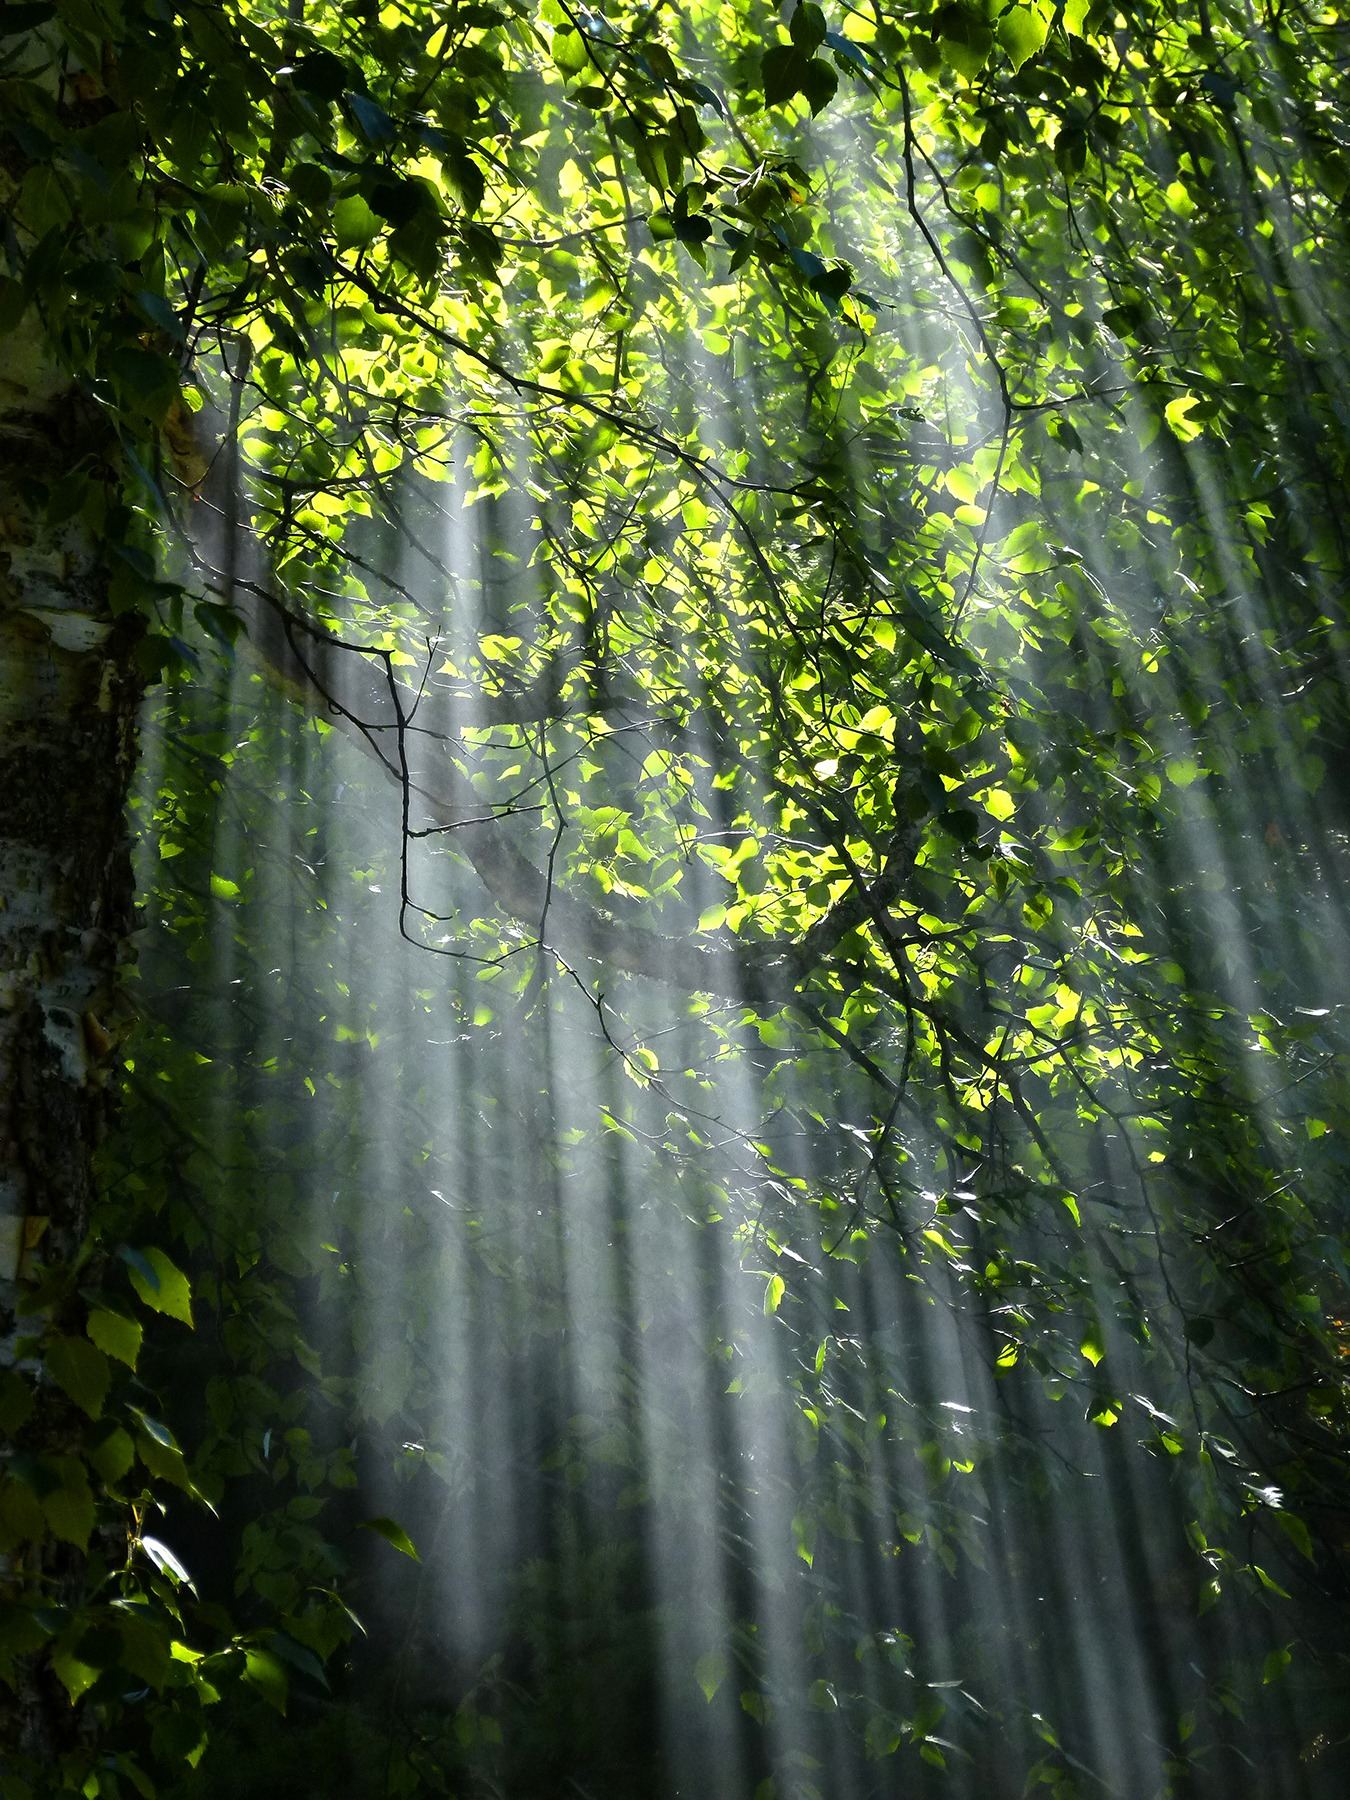 Sun shining through branches in forest. Photo.